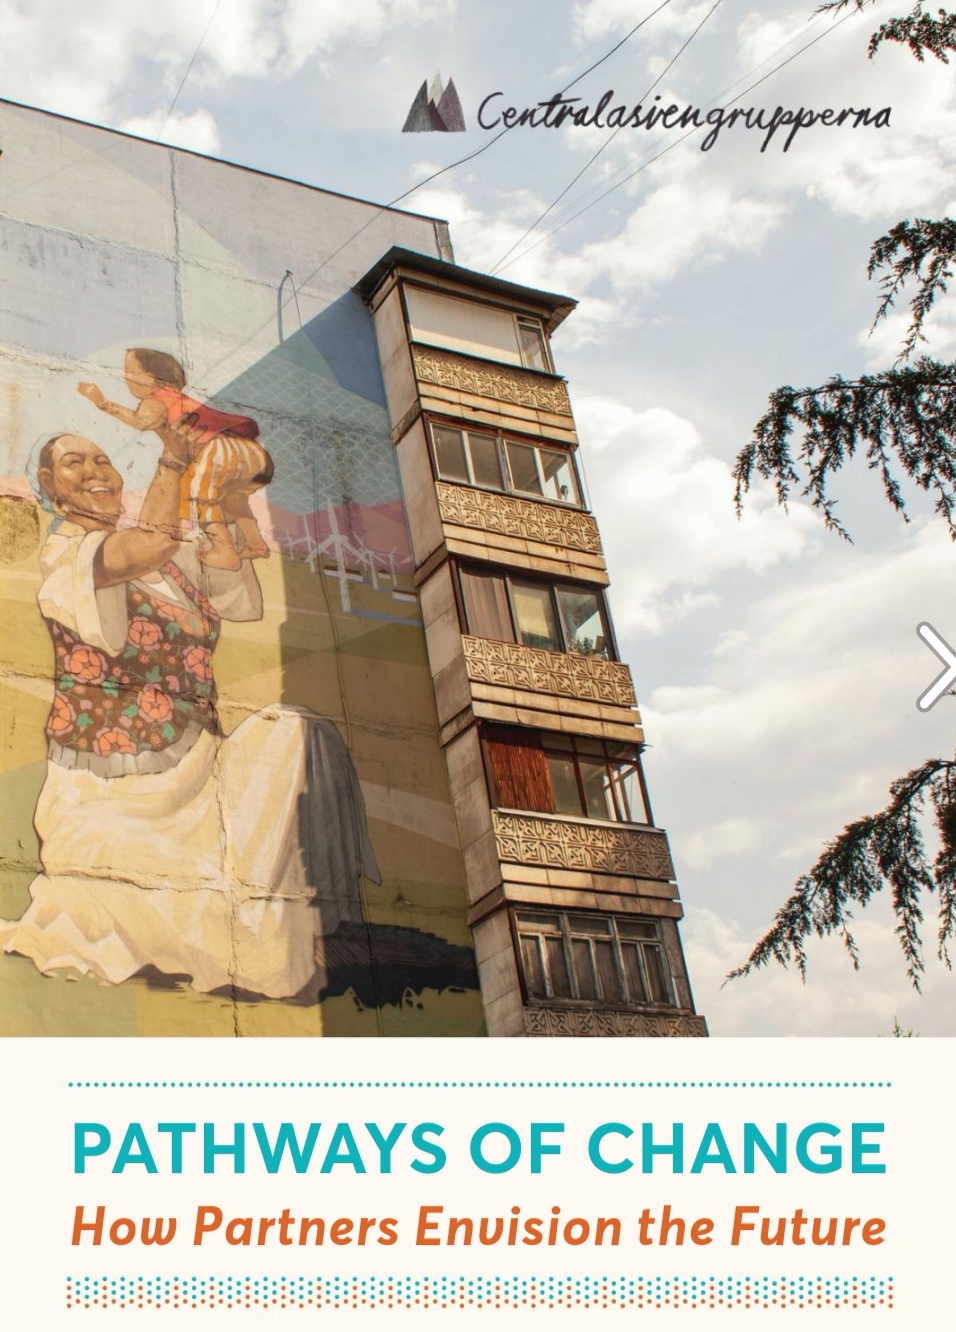 Pathways of Change - How Partners Envision the Future